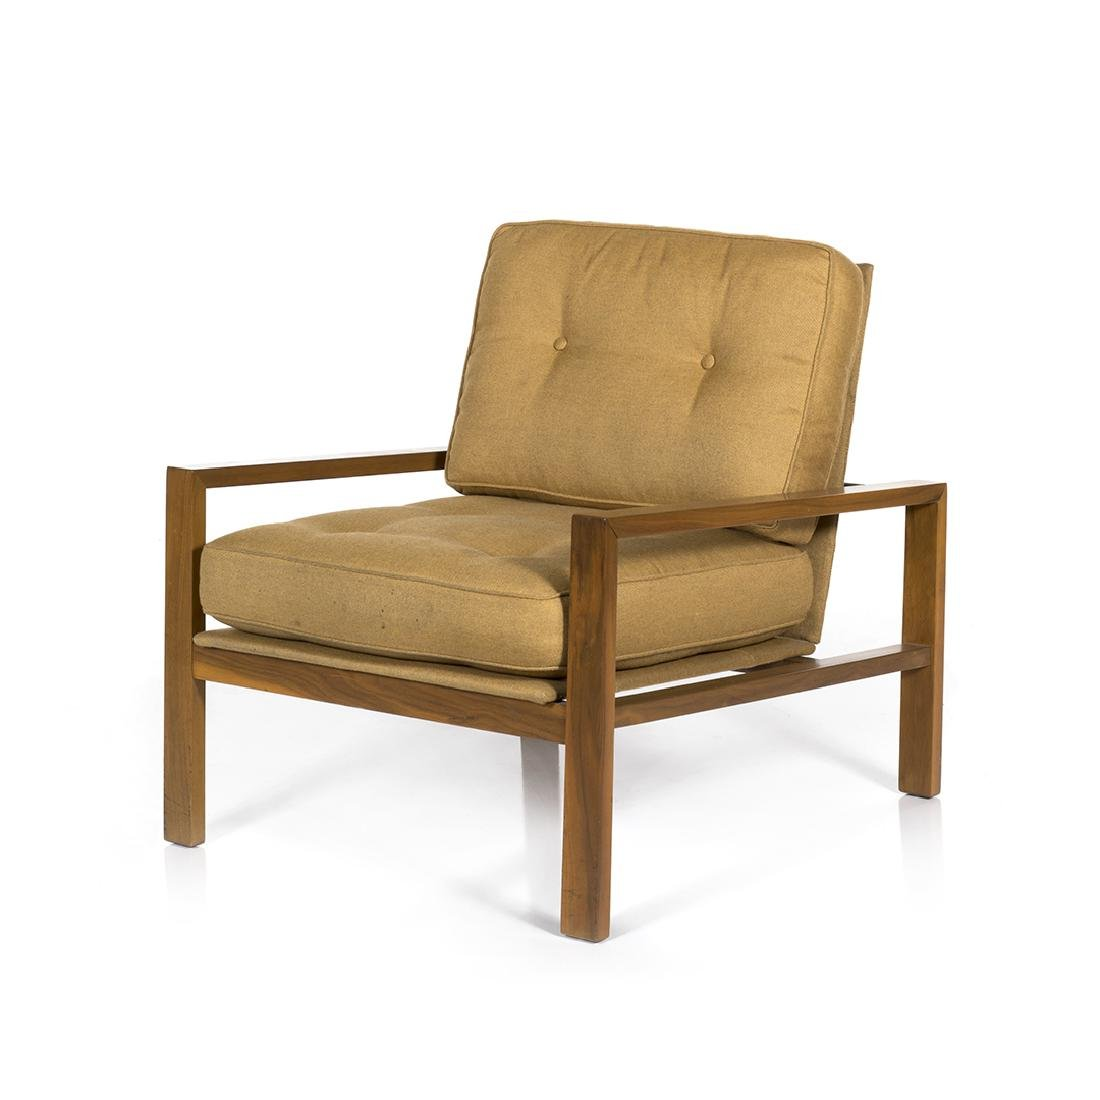 Van Keppel and Green Prototype Lounge Chair